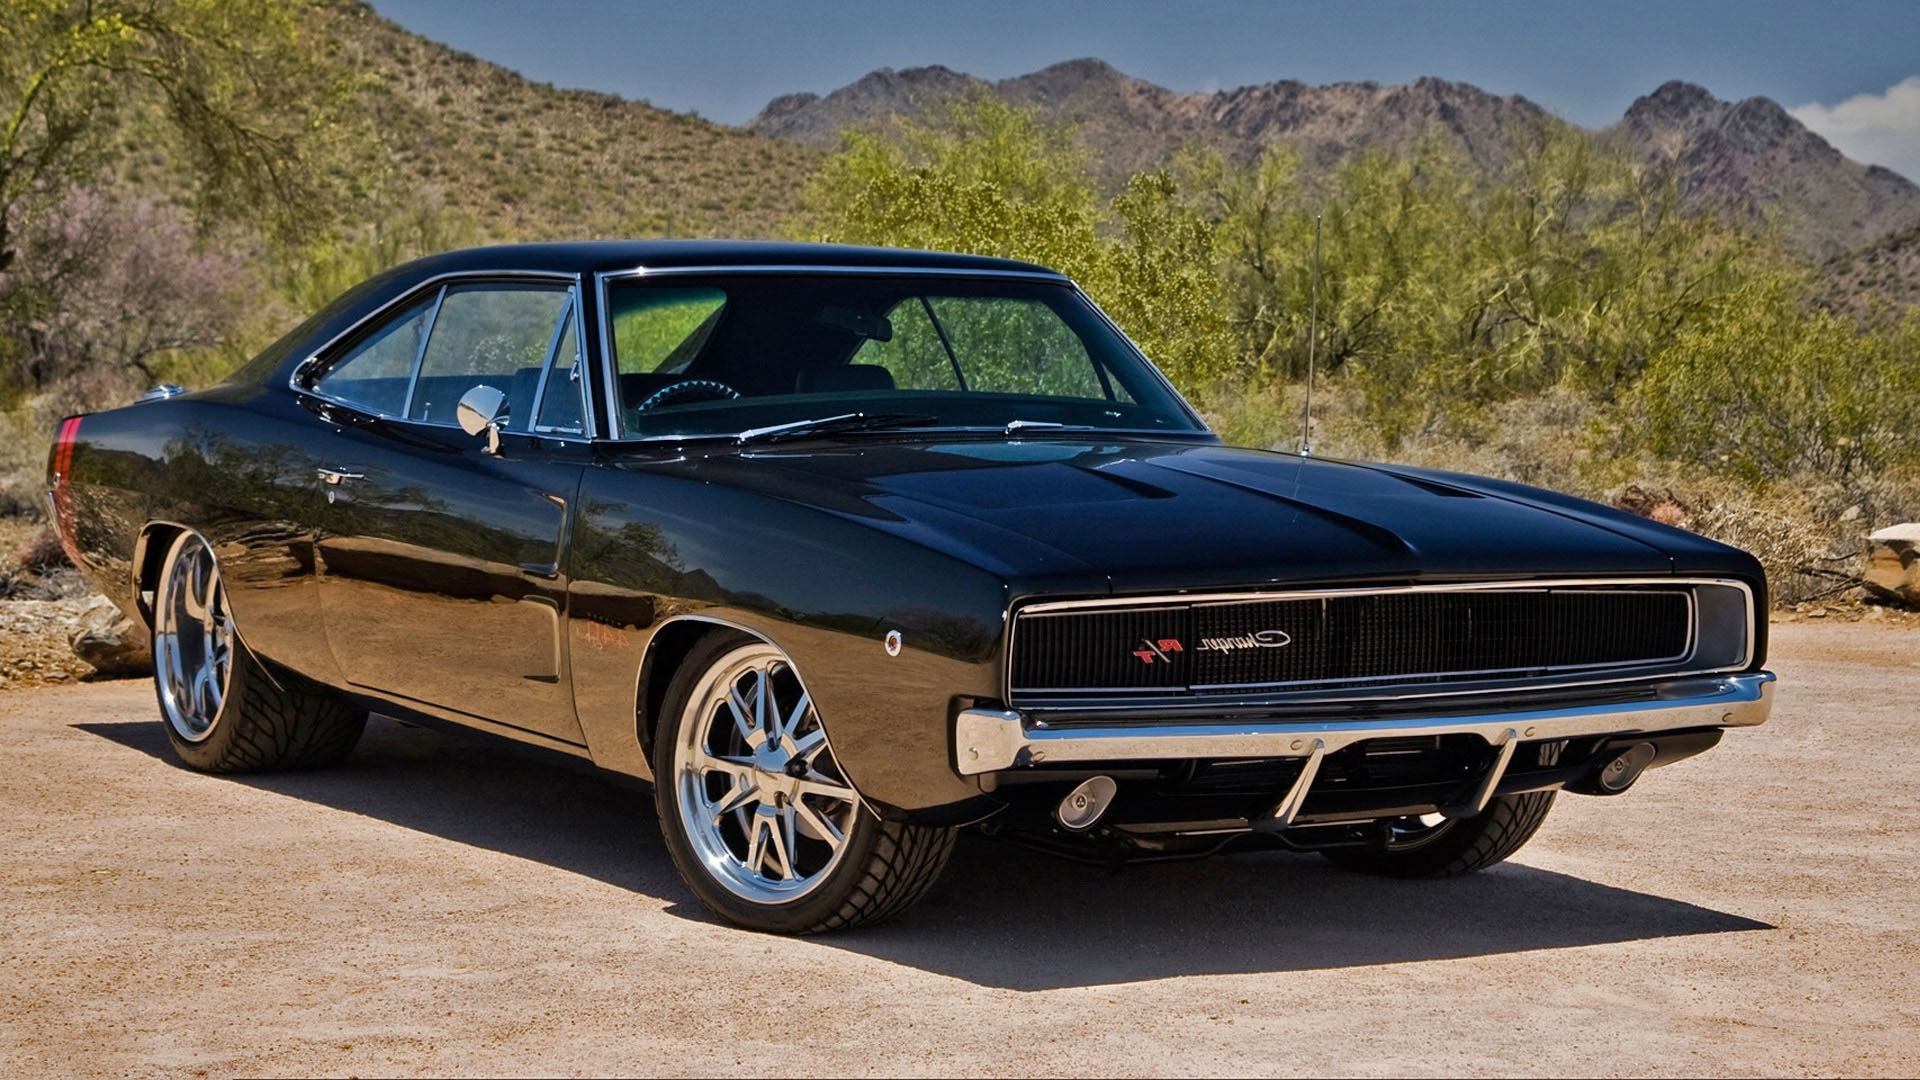 1970 dodge charger wallpaper hd wallpapersafari. Black Bedroom Furniture Sets. Home Design Ideas